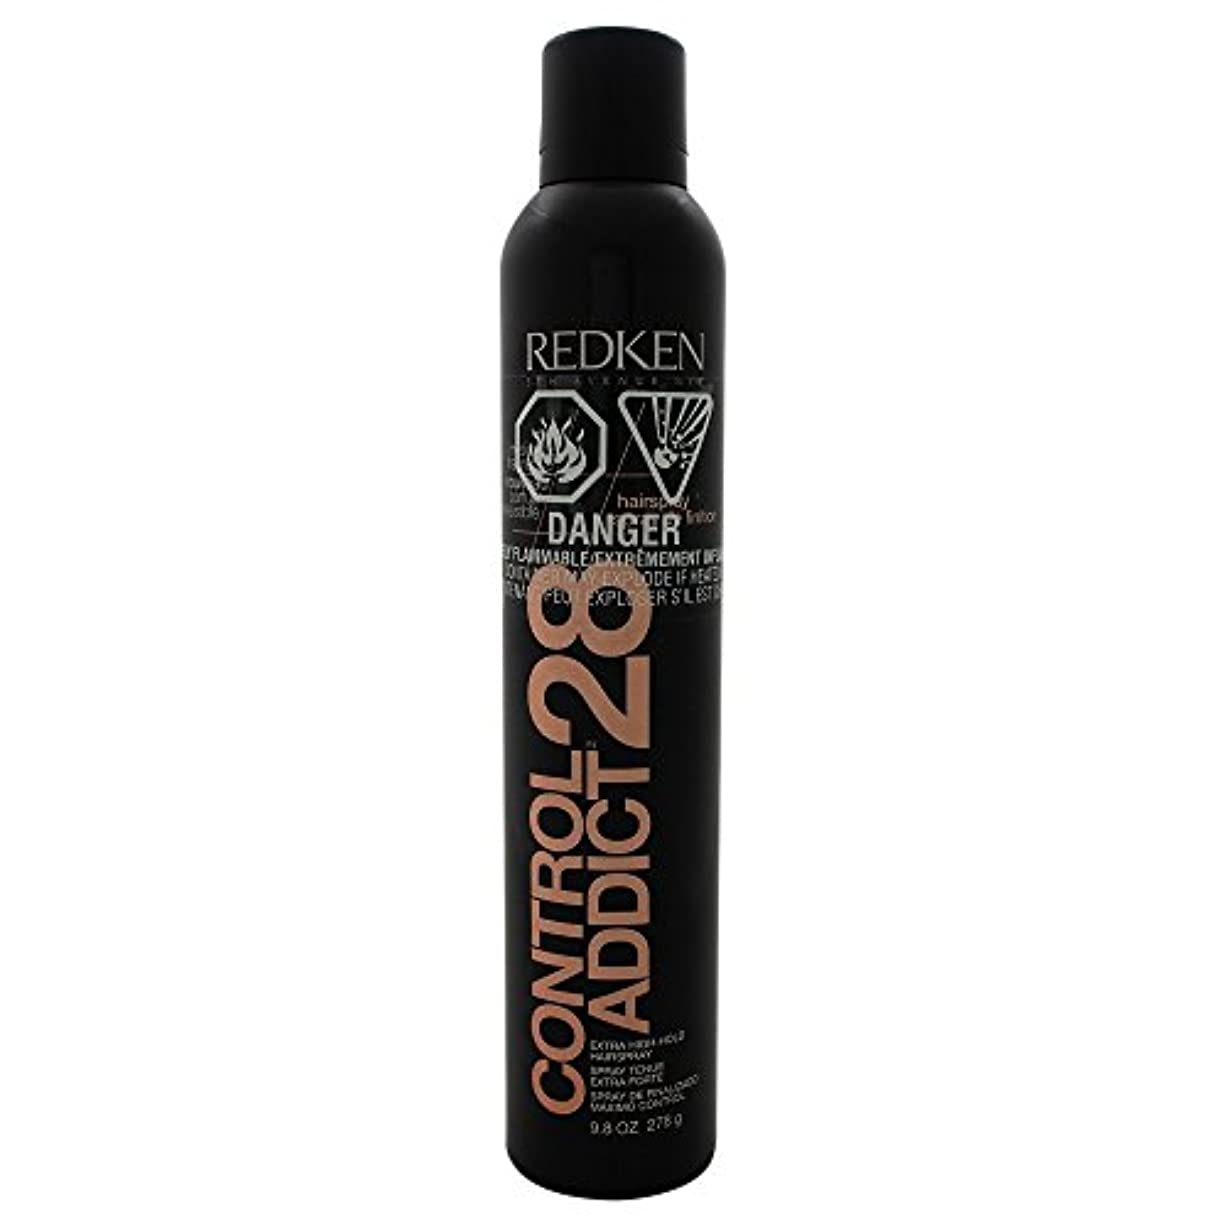 スパイラル剥離接触by Redken CONTROL ADDICT 28 EXTRA-HIGH HOLD HAIR SPRAY 9.8 OZ(BLACK PACKAGING) by REDKEN